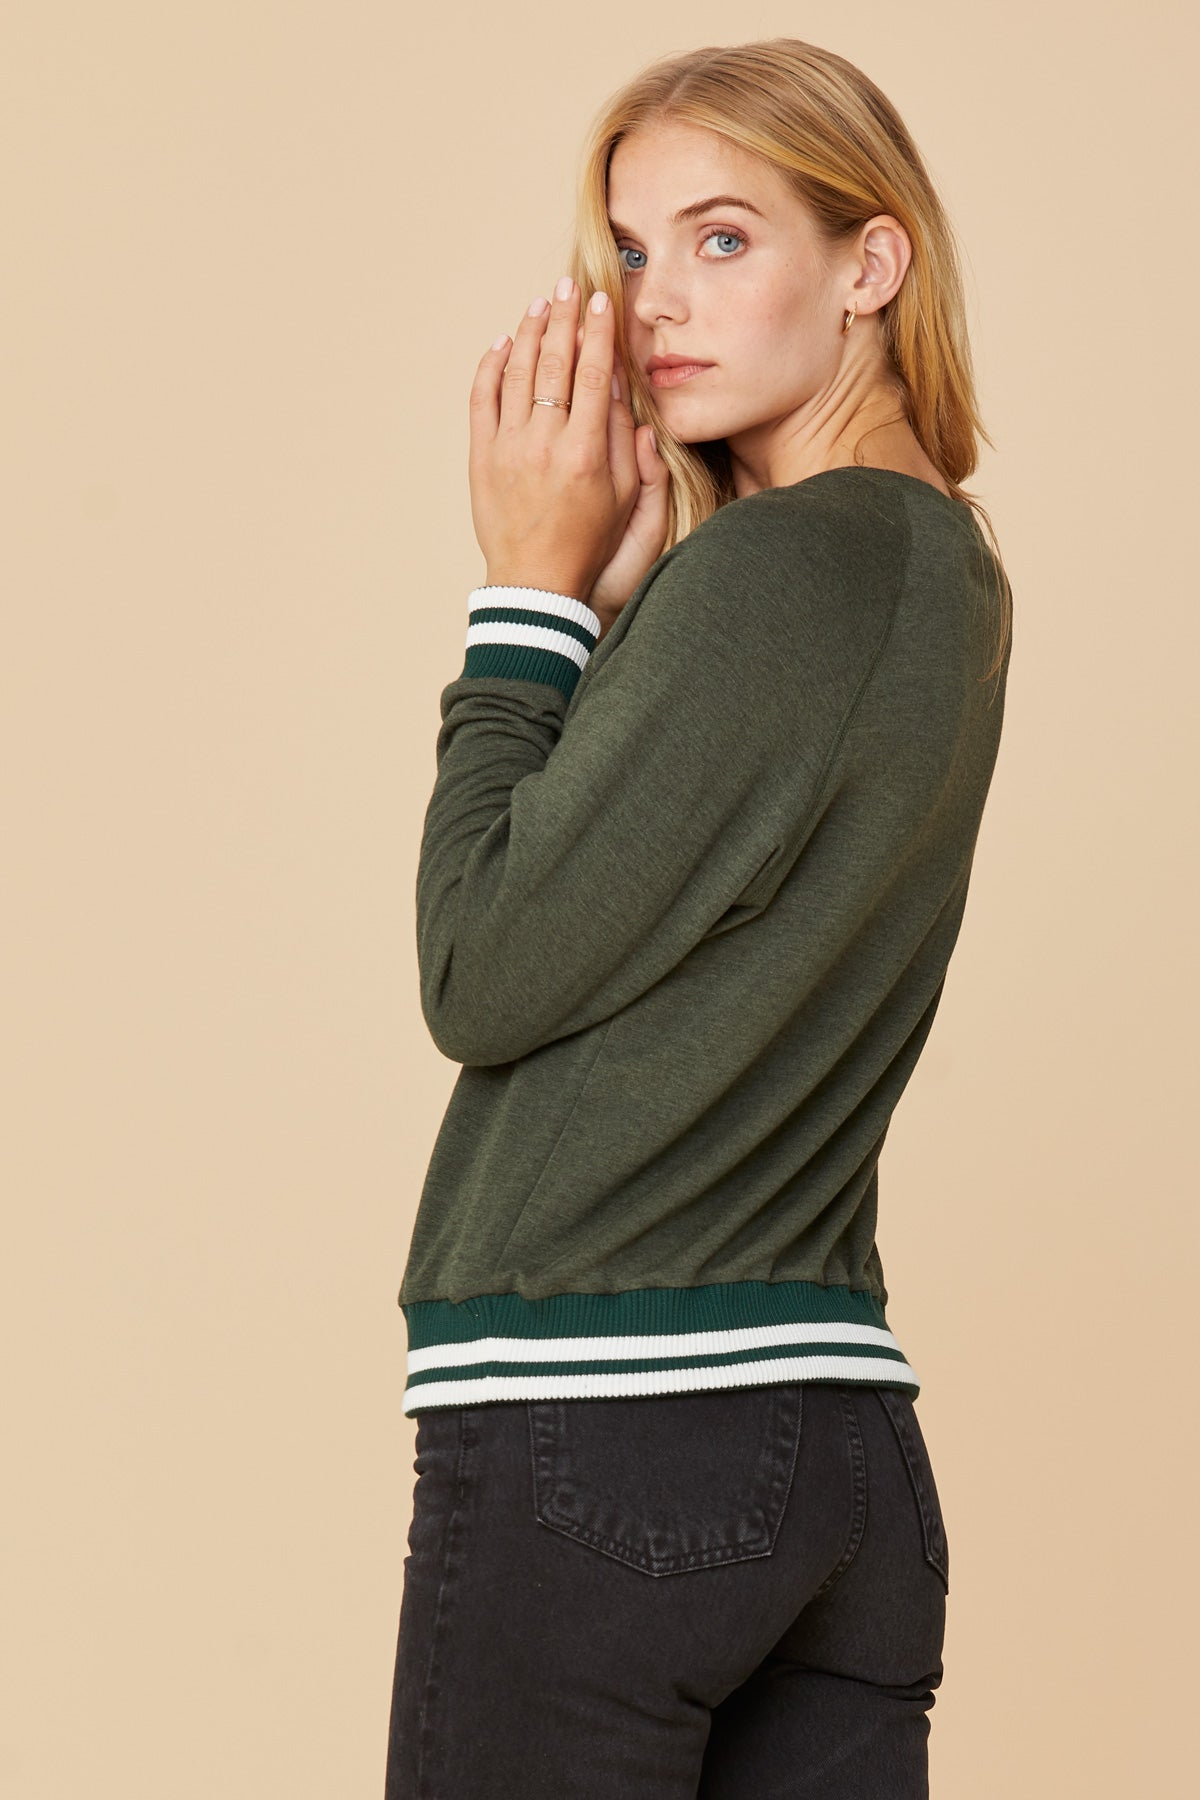 LNA Roller Coaster Sweatshirt in Olive